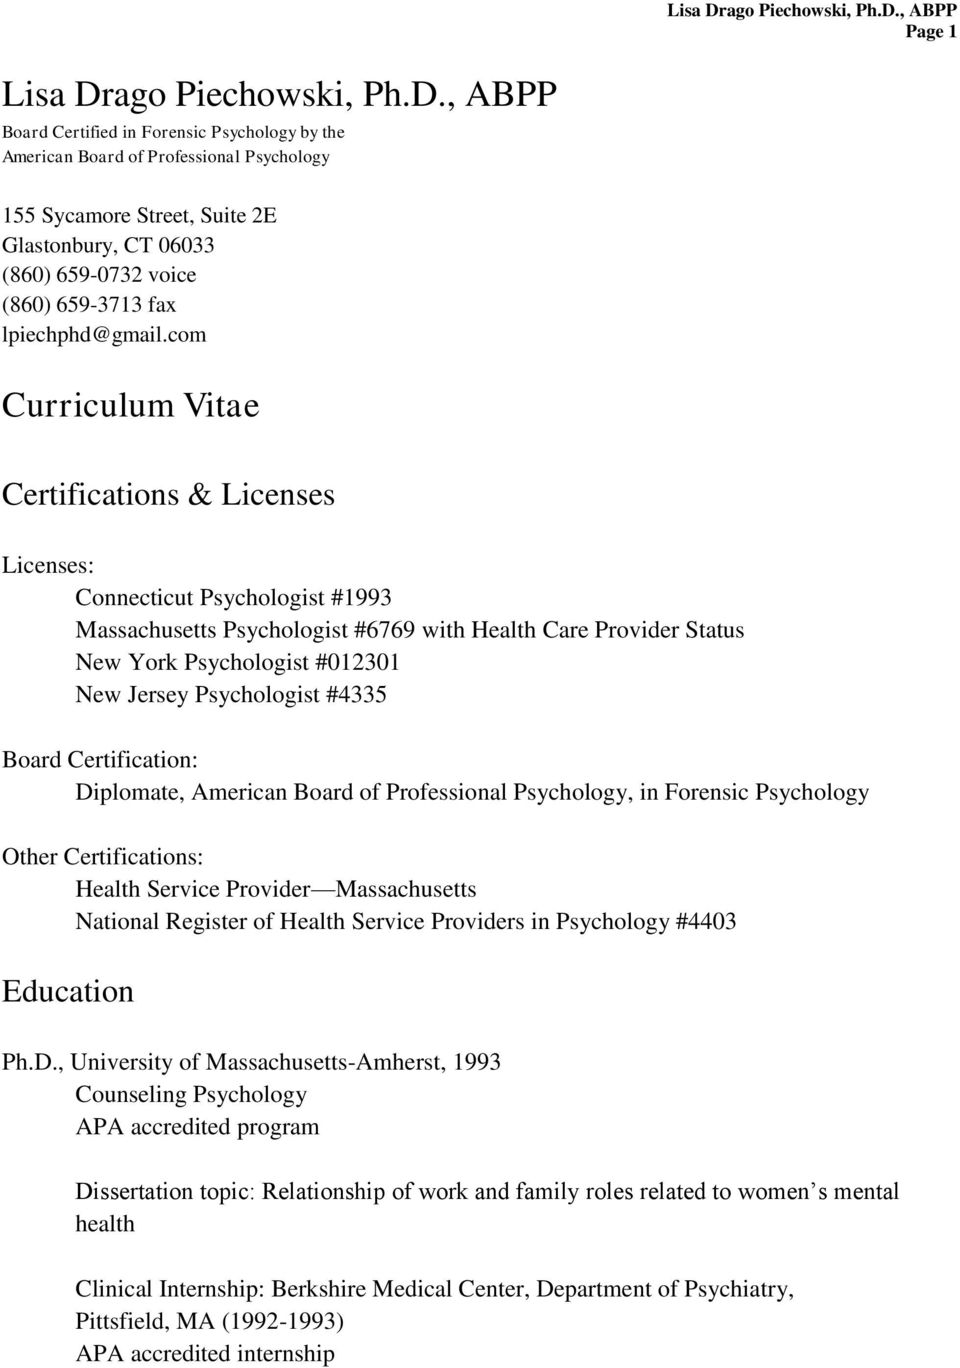 , ABPP Board Certified in Forensic Psychology by the American Board of Professional Psychology 155 Sycamore Street, Suite 2E Glastonbury, CT 06033 (860) 659-0732 voice (860) 659-3713 fax